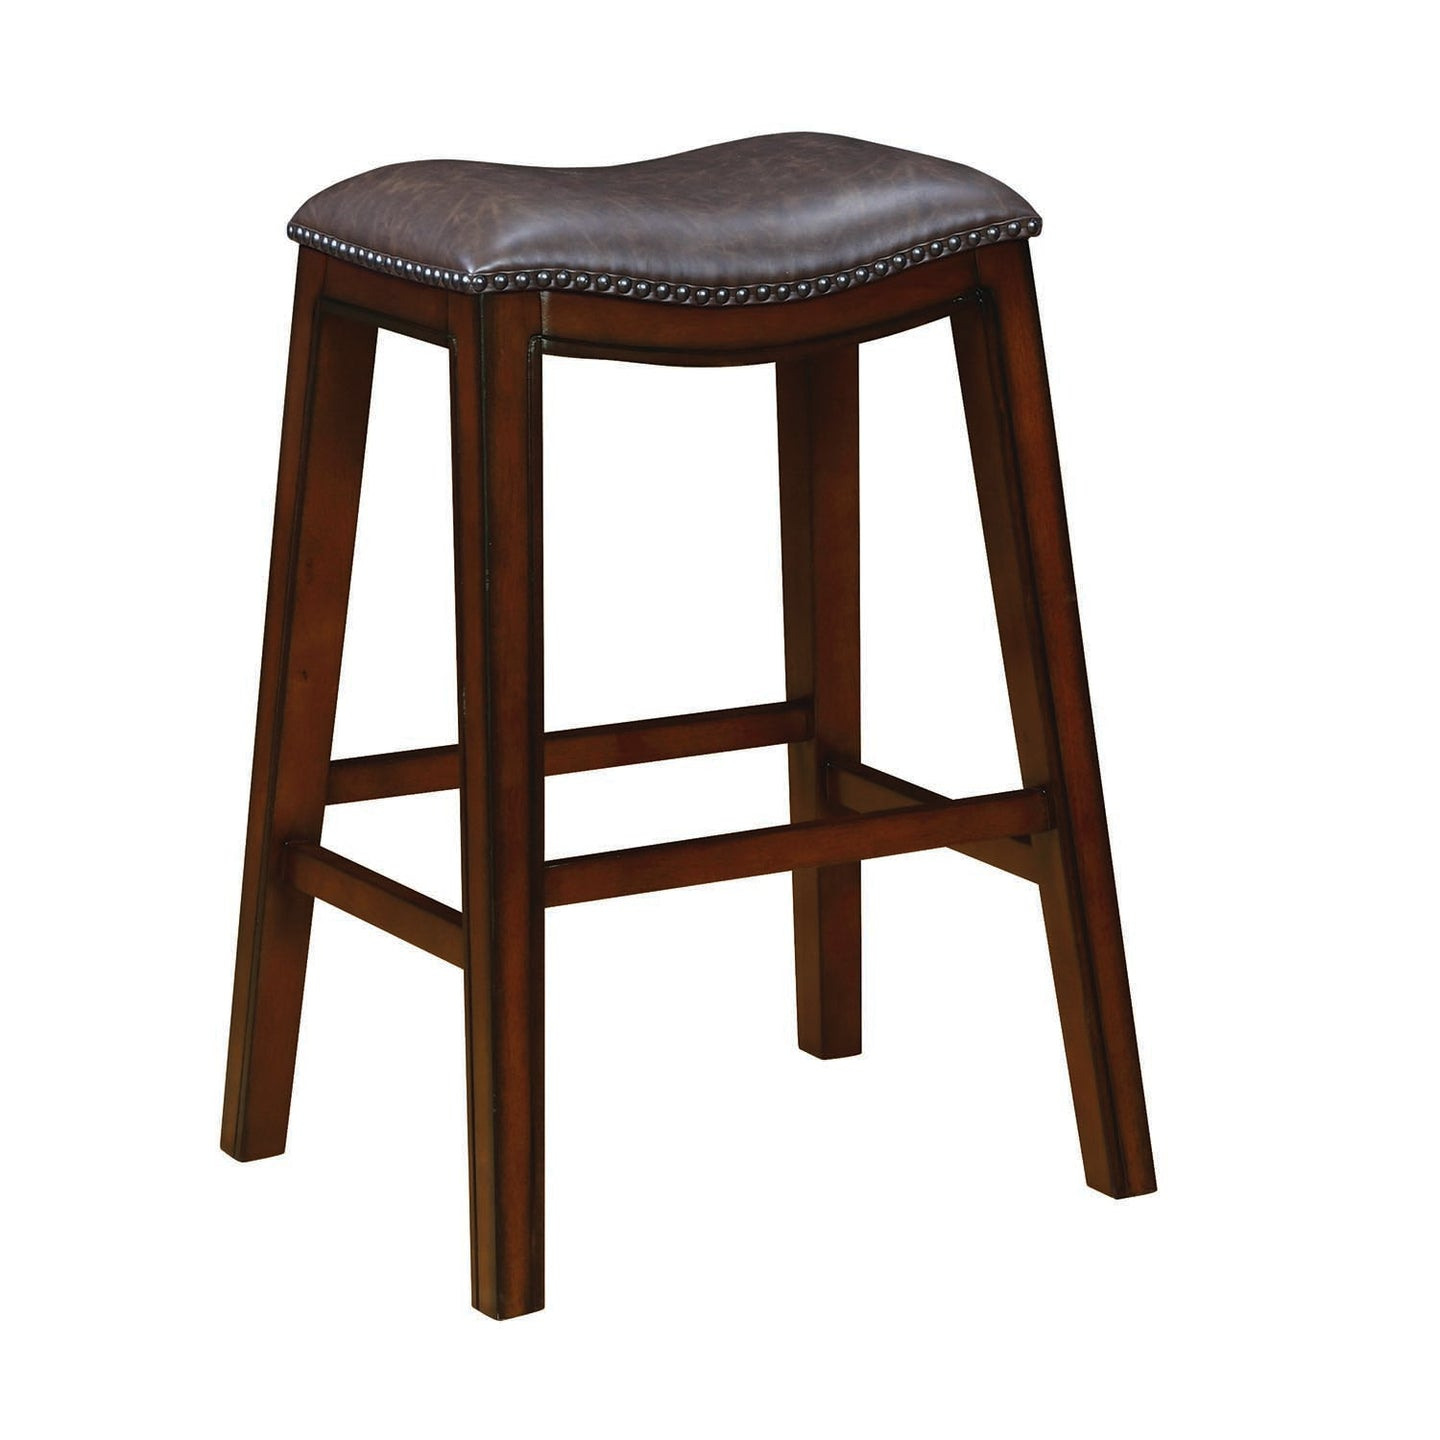 Coaster Two Tone Brown Leatherette Upholstery Bar Stool Set of 2